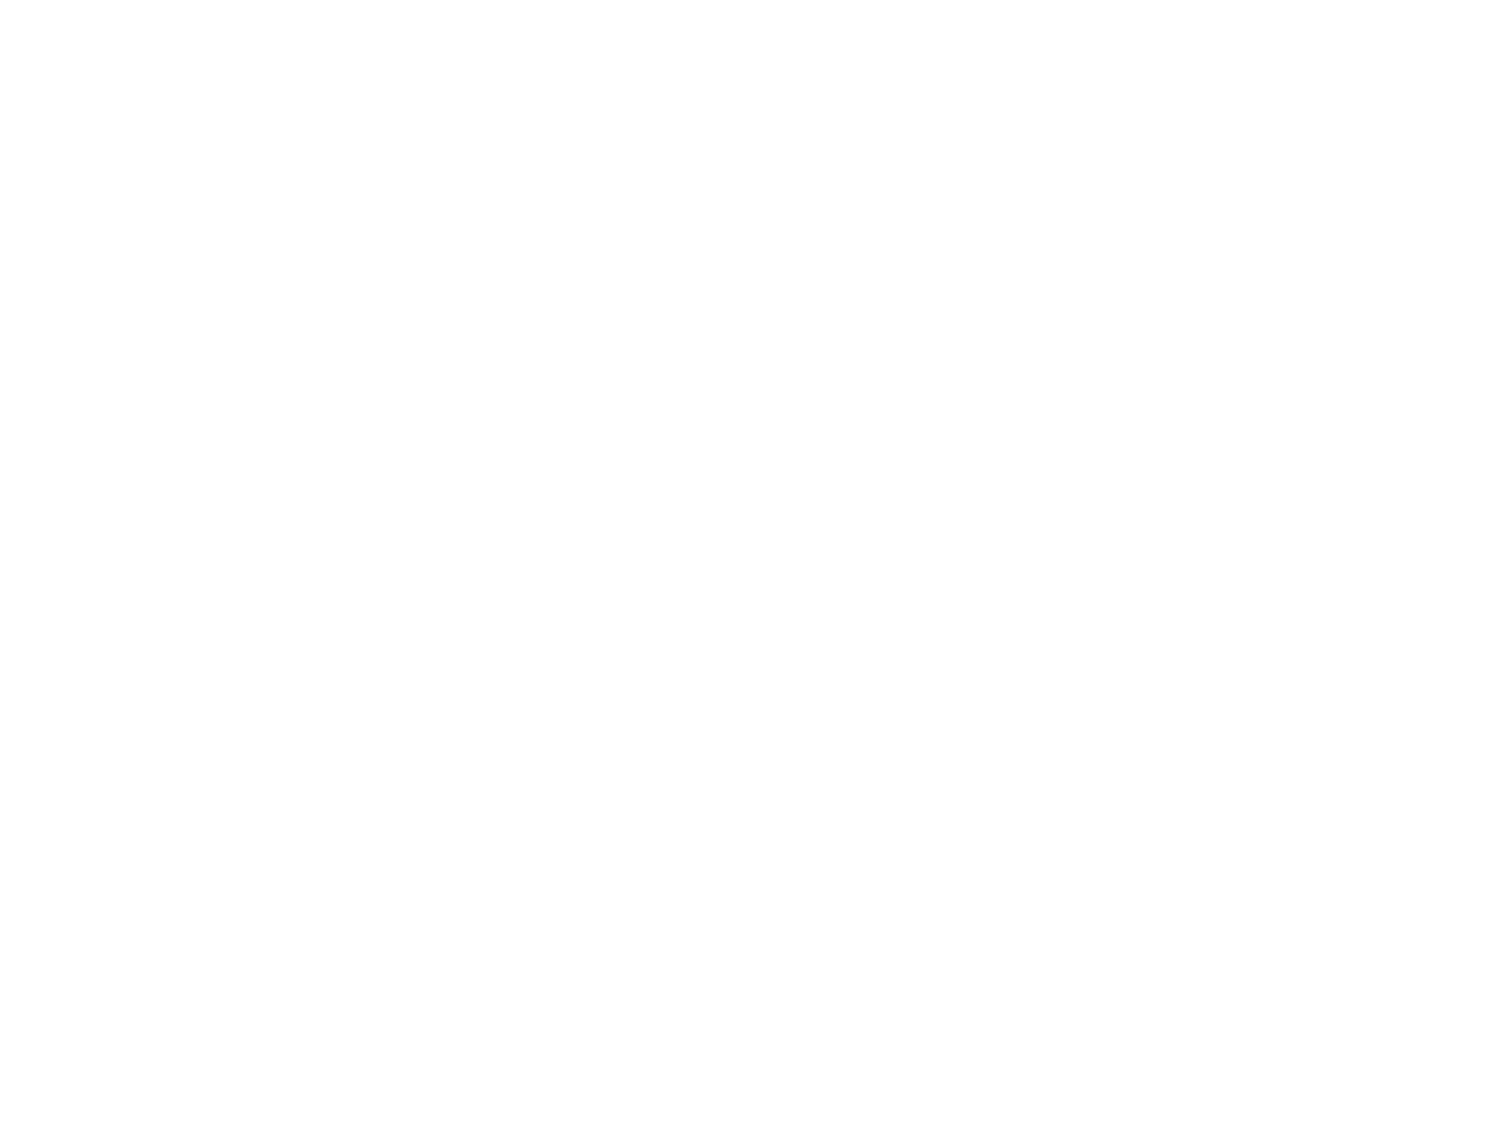 Bygones Tea Room